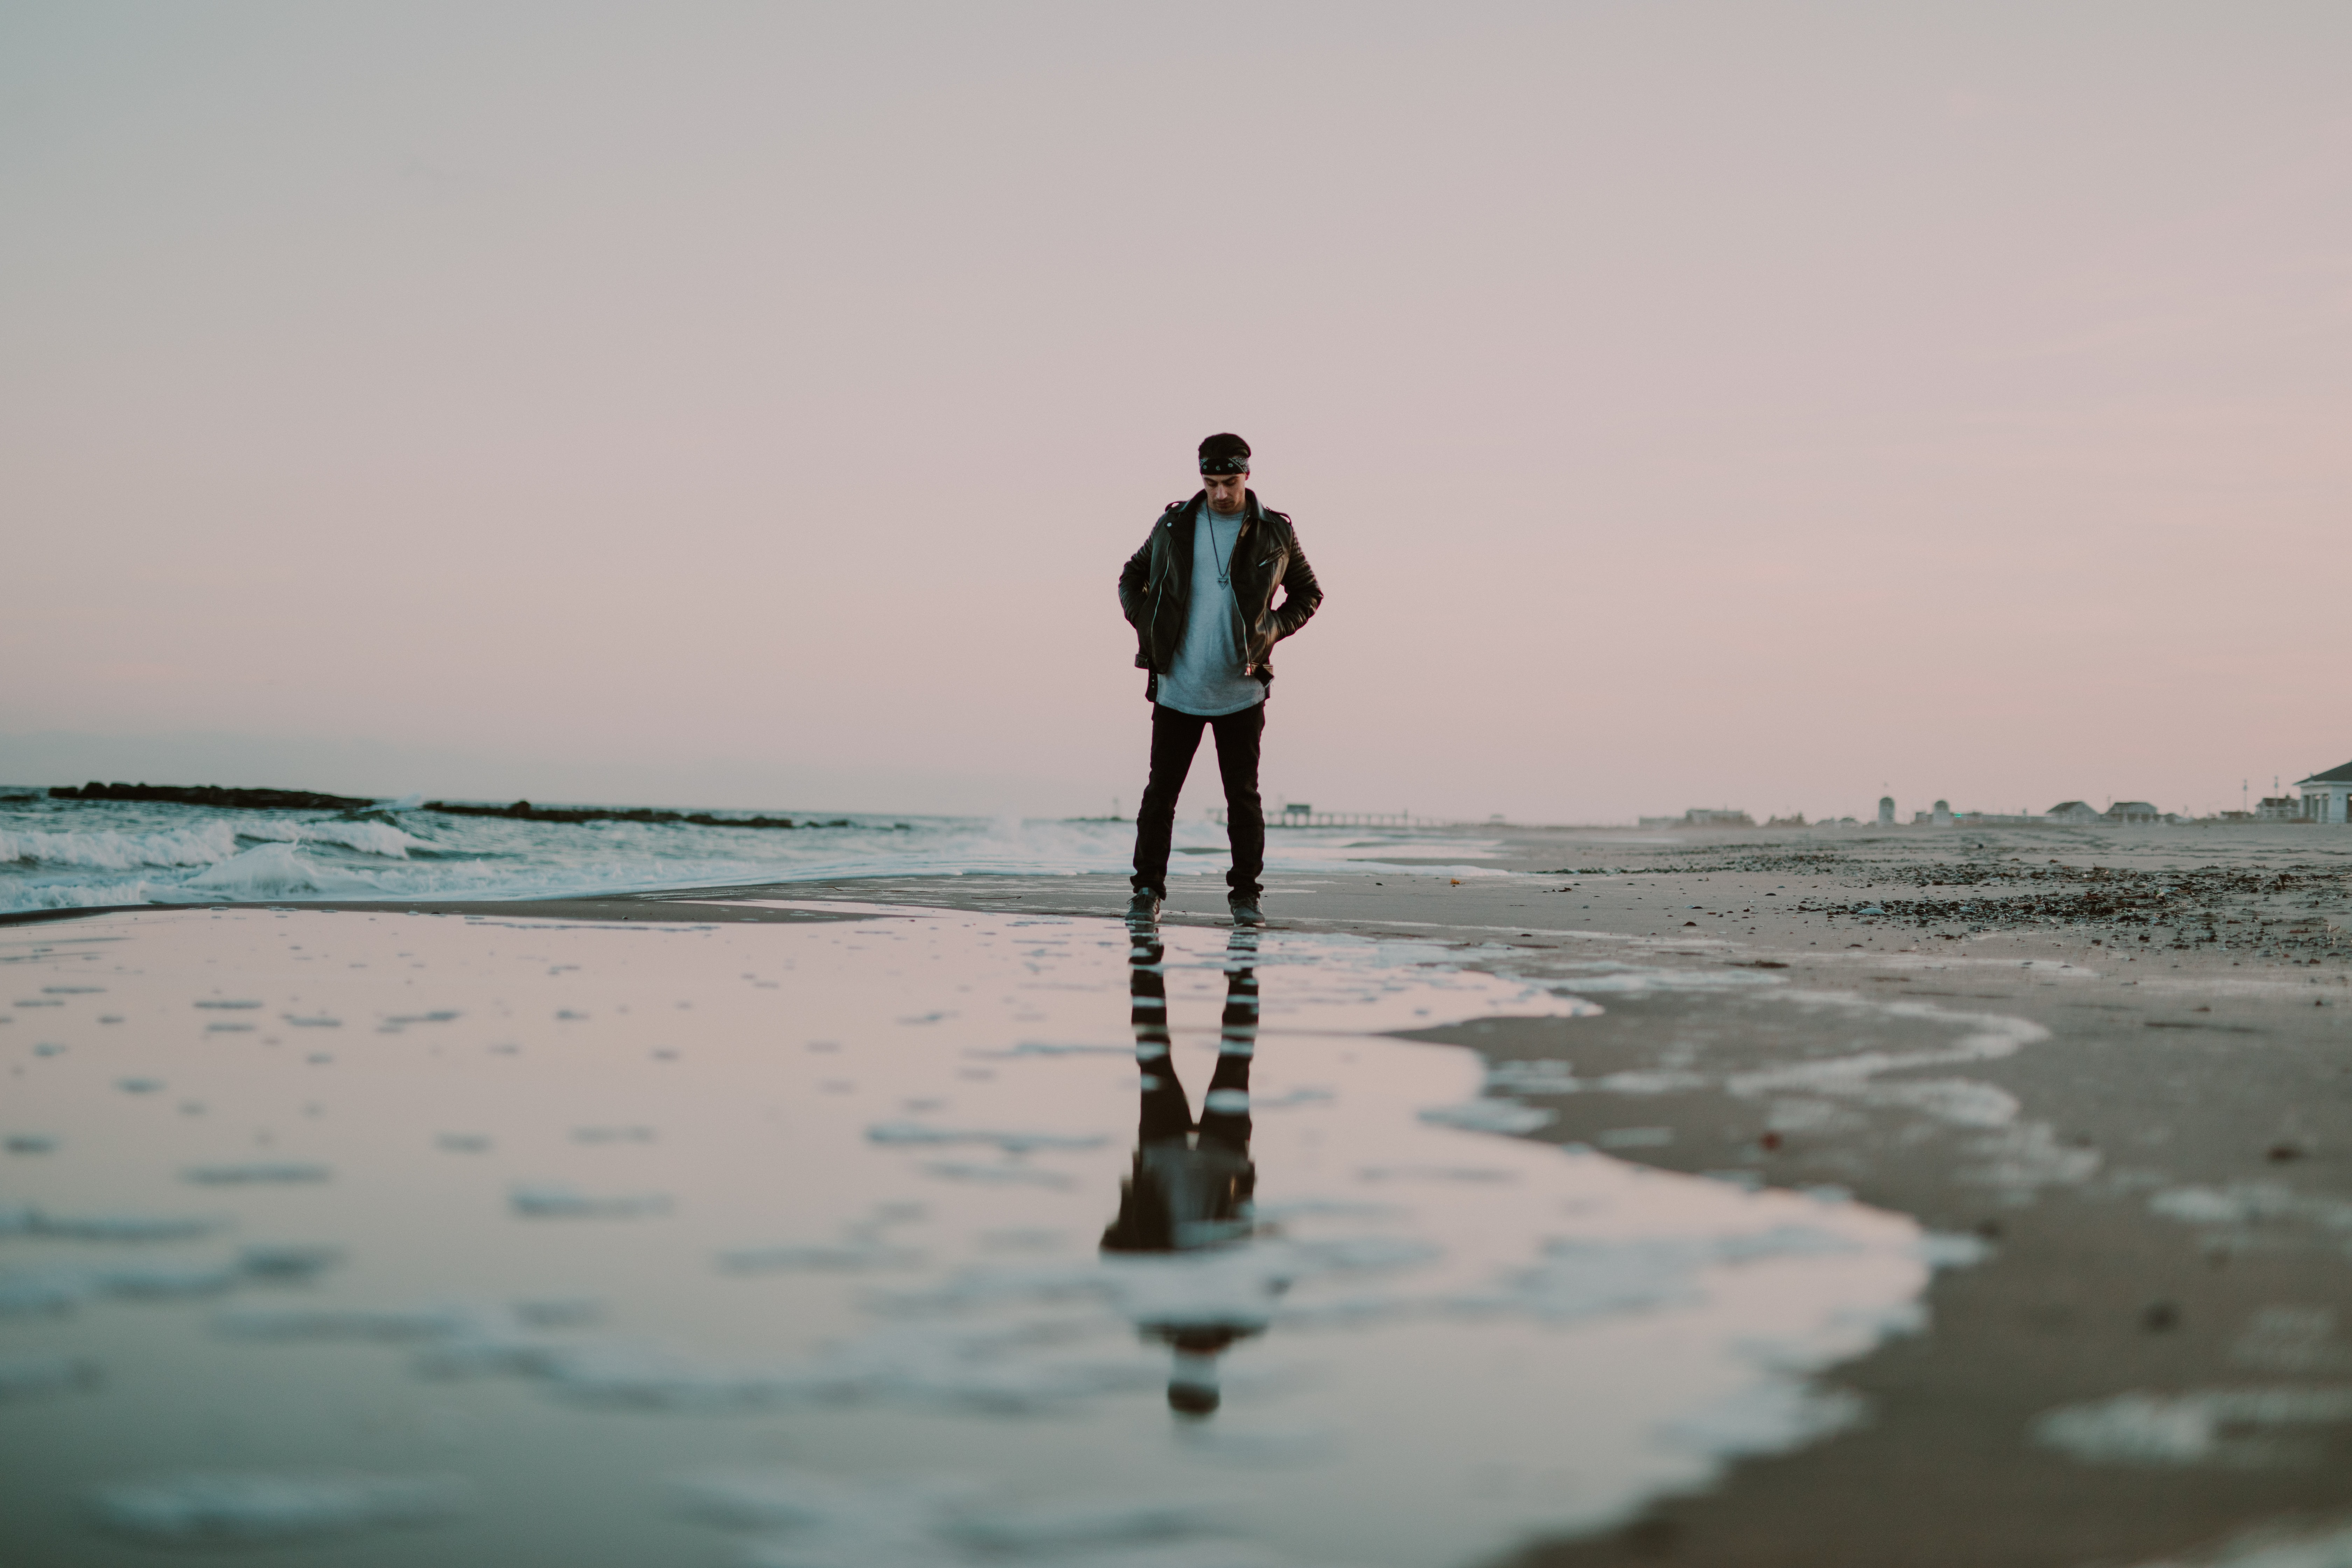 photography of man standing near water body